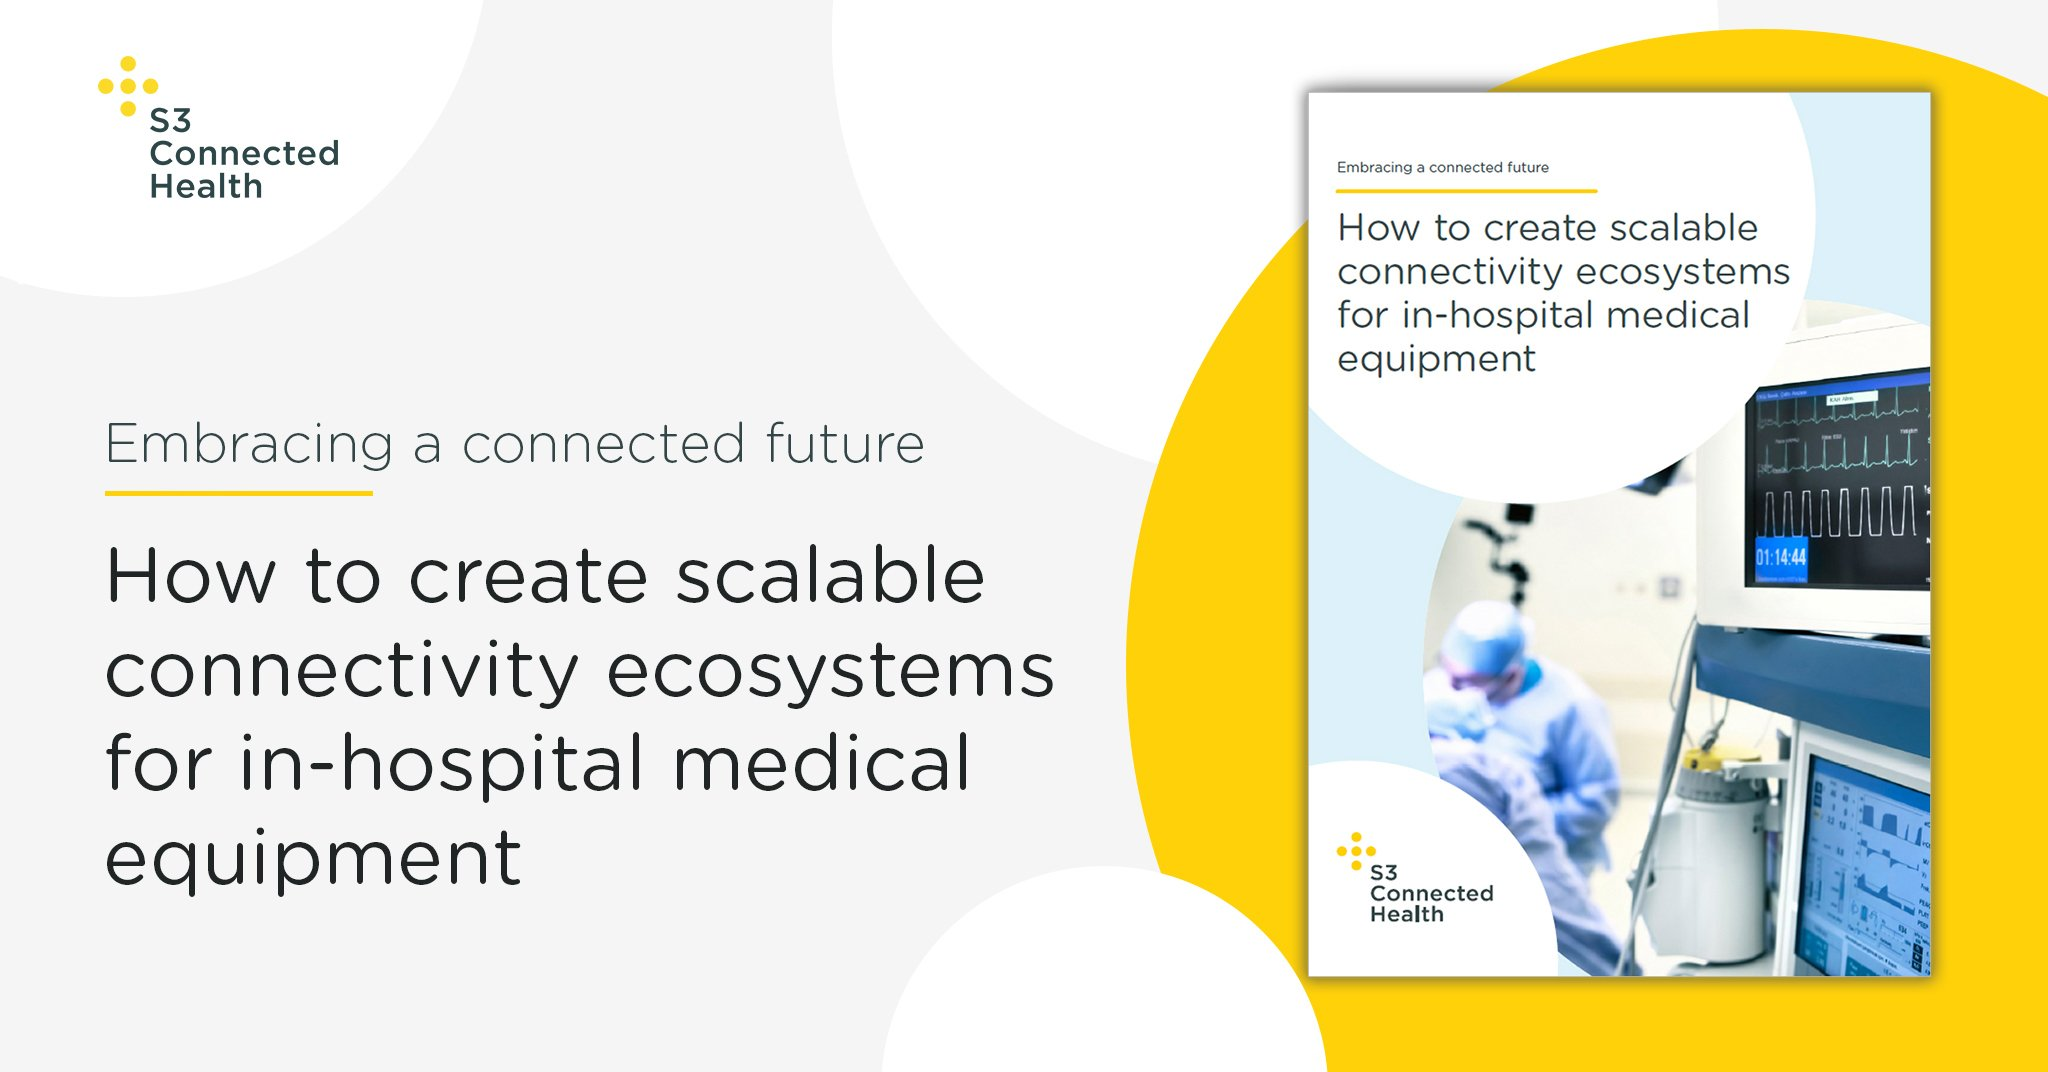 Whitepaper release: How to create scalable connectivity ecosystems for in-hospital medical equipment